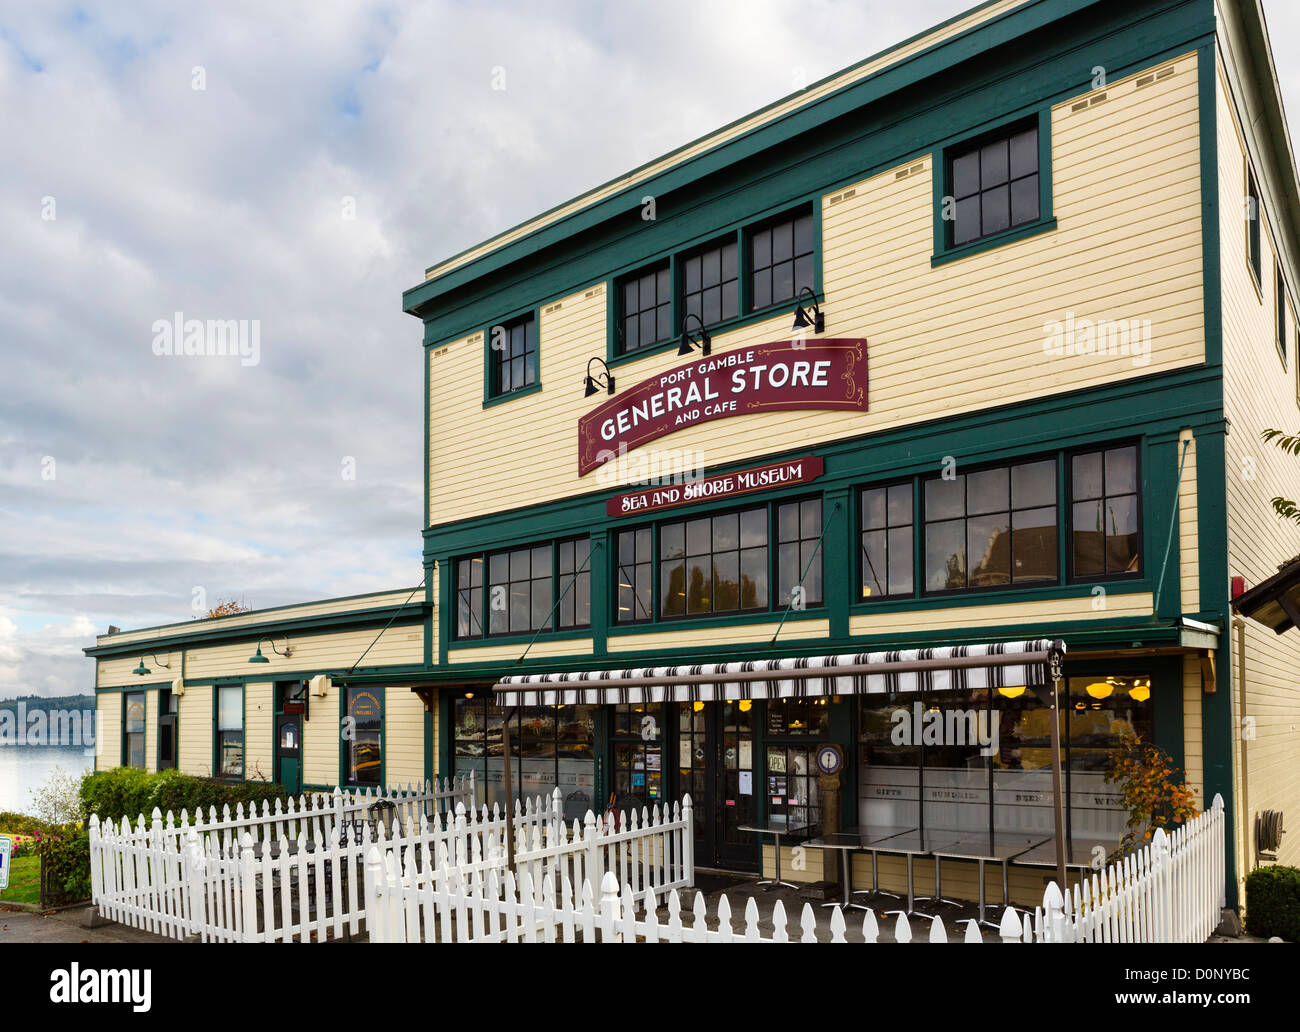 The Port Gamble General Store and Cafe, NE Rainier Avenue (old Main Street), Port Gamble, Olympic Peninsula, Washington, - Stock Image